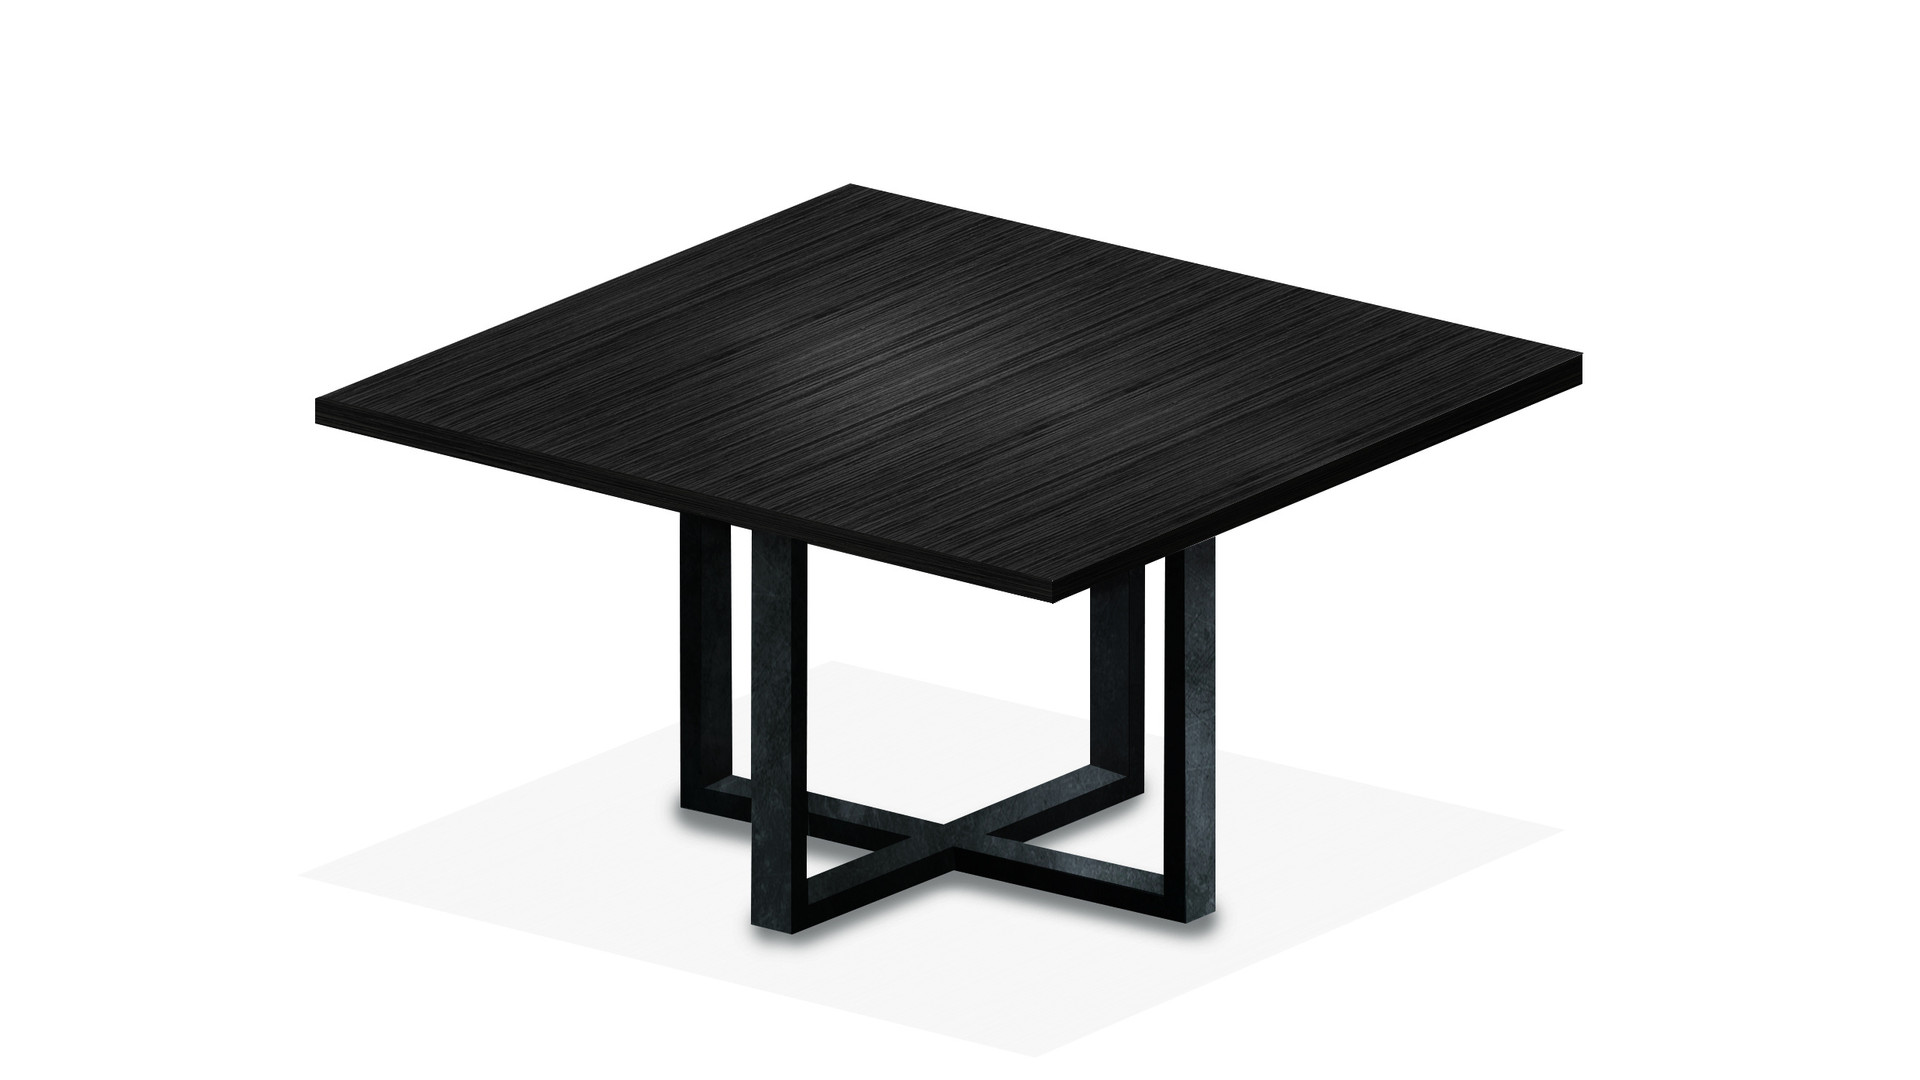 CALDERITA  Feet in laquered metal Top in oak veneer (other finishes/sizes on demand)   Size (LxWxH) :  100 x 100 x 75 cm 140 x 140 x 75 cm 180 x 180 x 75 cm